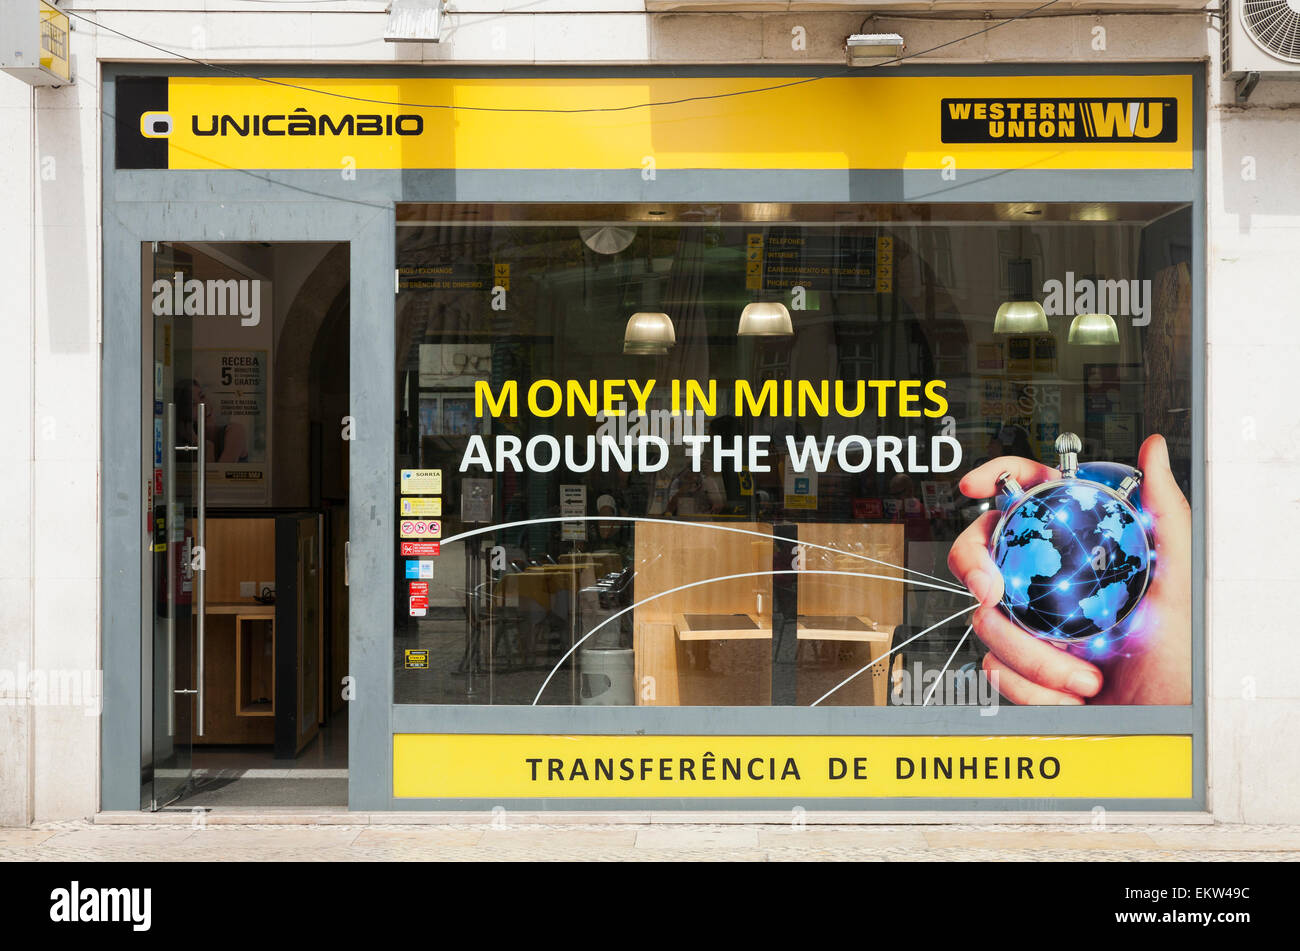 Western union money transfer office bureau in lisbon lisboa stock